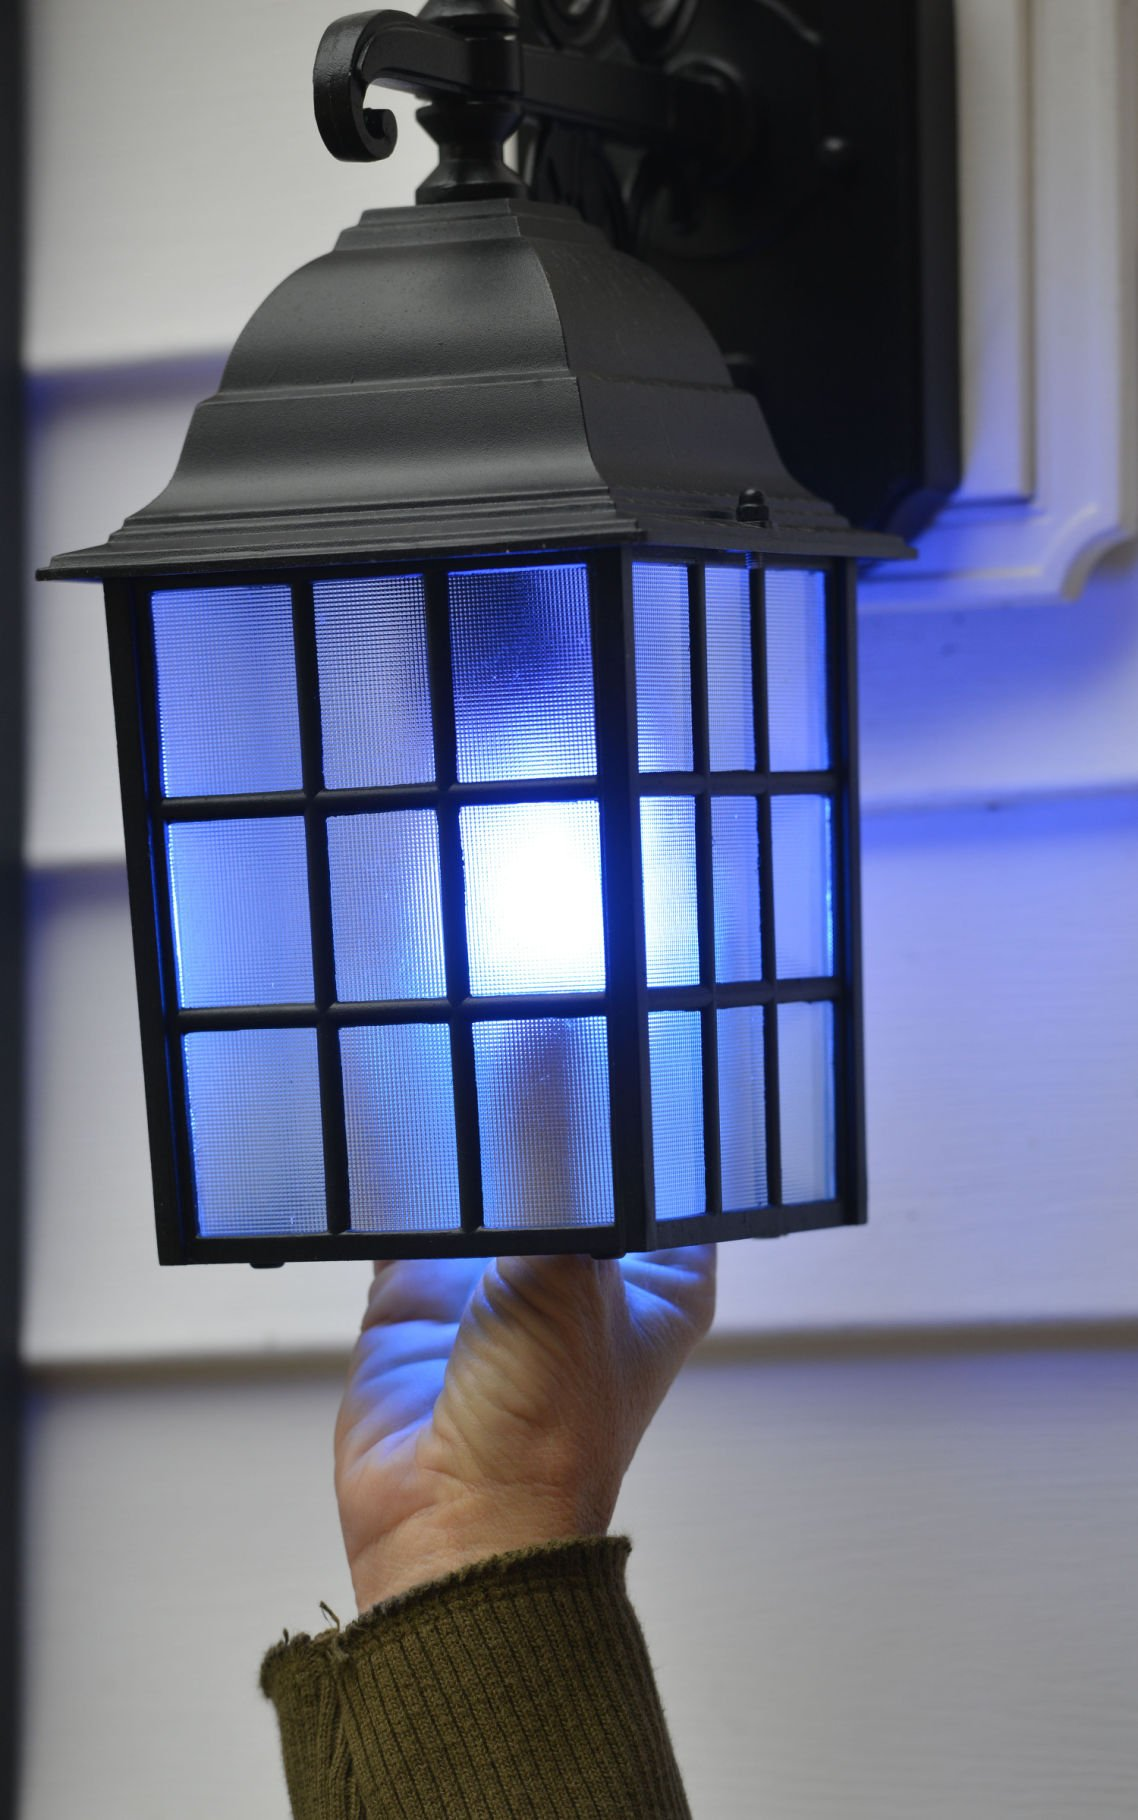 Area Residents Flipping Switches To Blue Porch Lights To